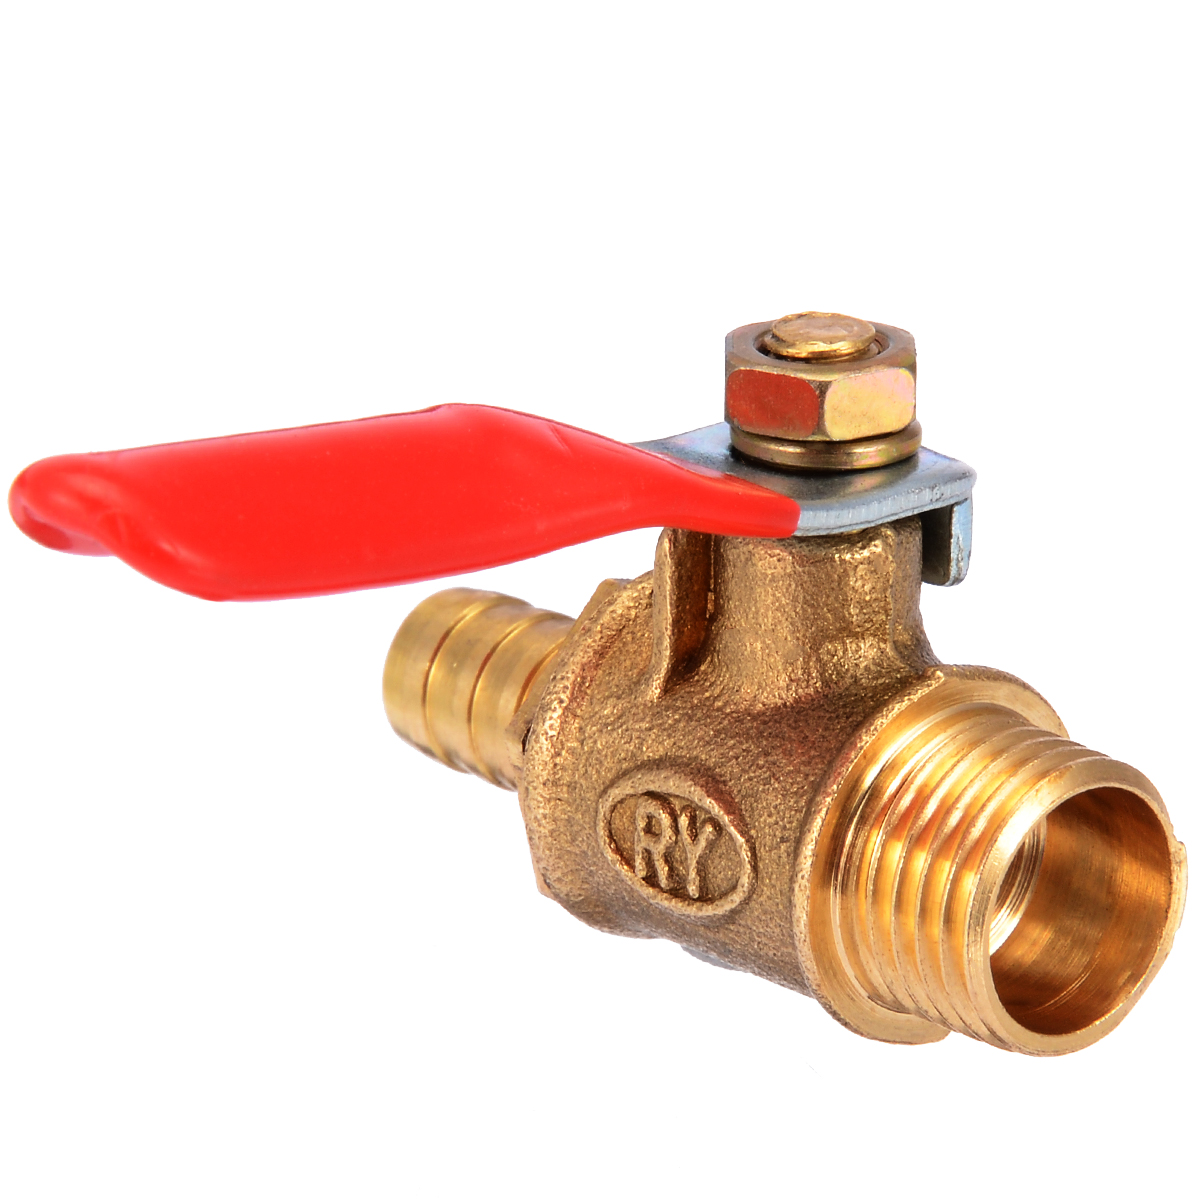 1/4 Inch Male Threaded Brass Ball Valve Barb Hose Metal Ball Valve With Red Lever Handle Home Improvement Tool